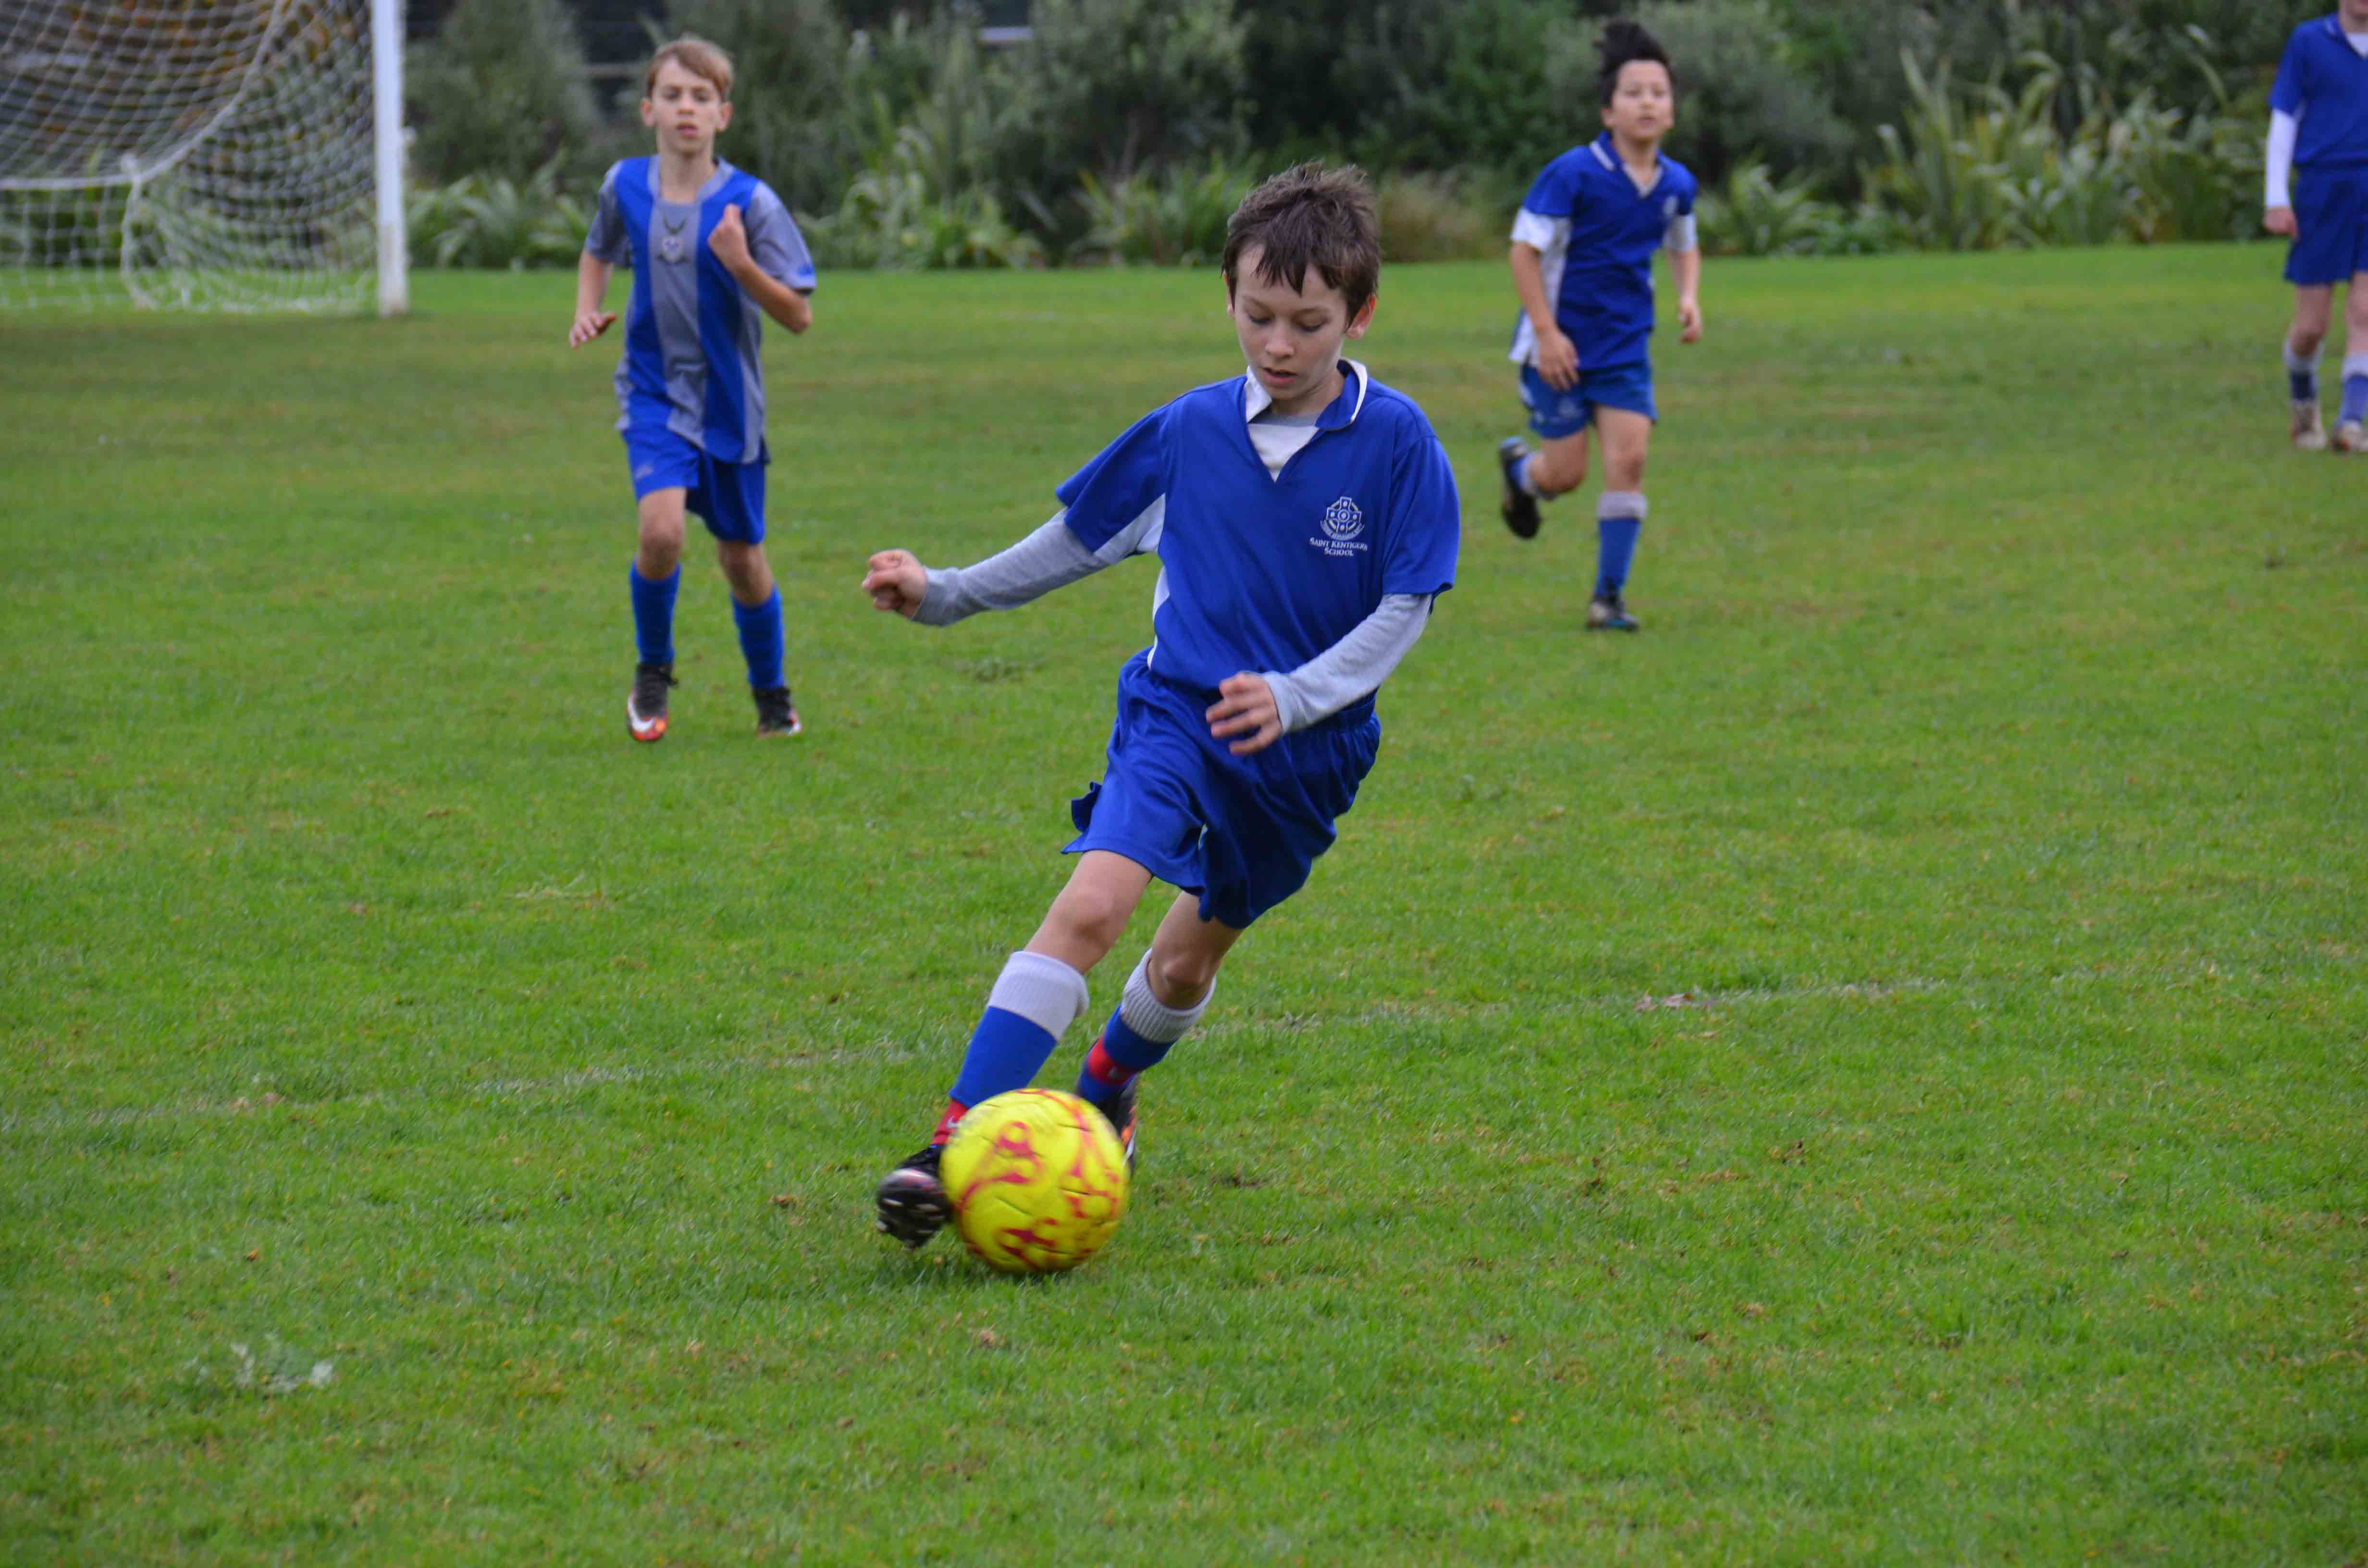 Saint-Kentigern-Boys'-Schoo-Sport-Football.jpg